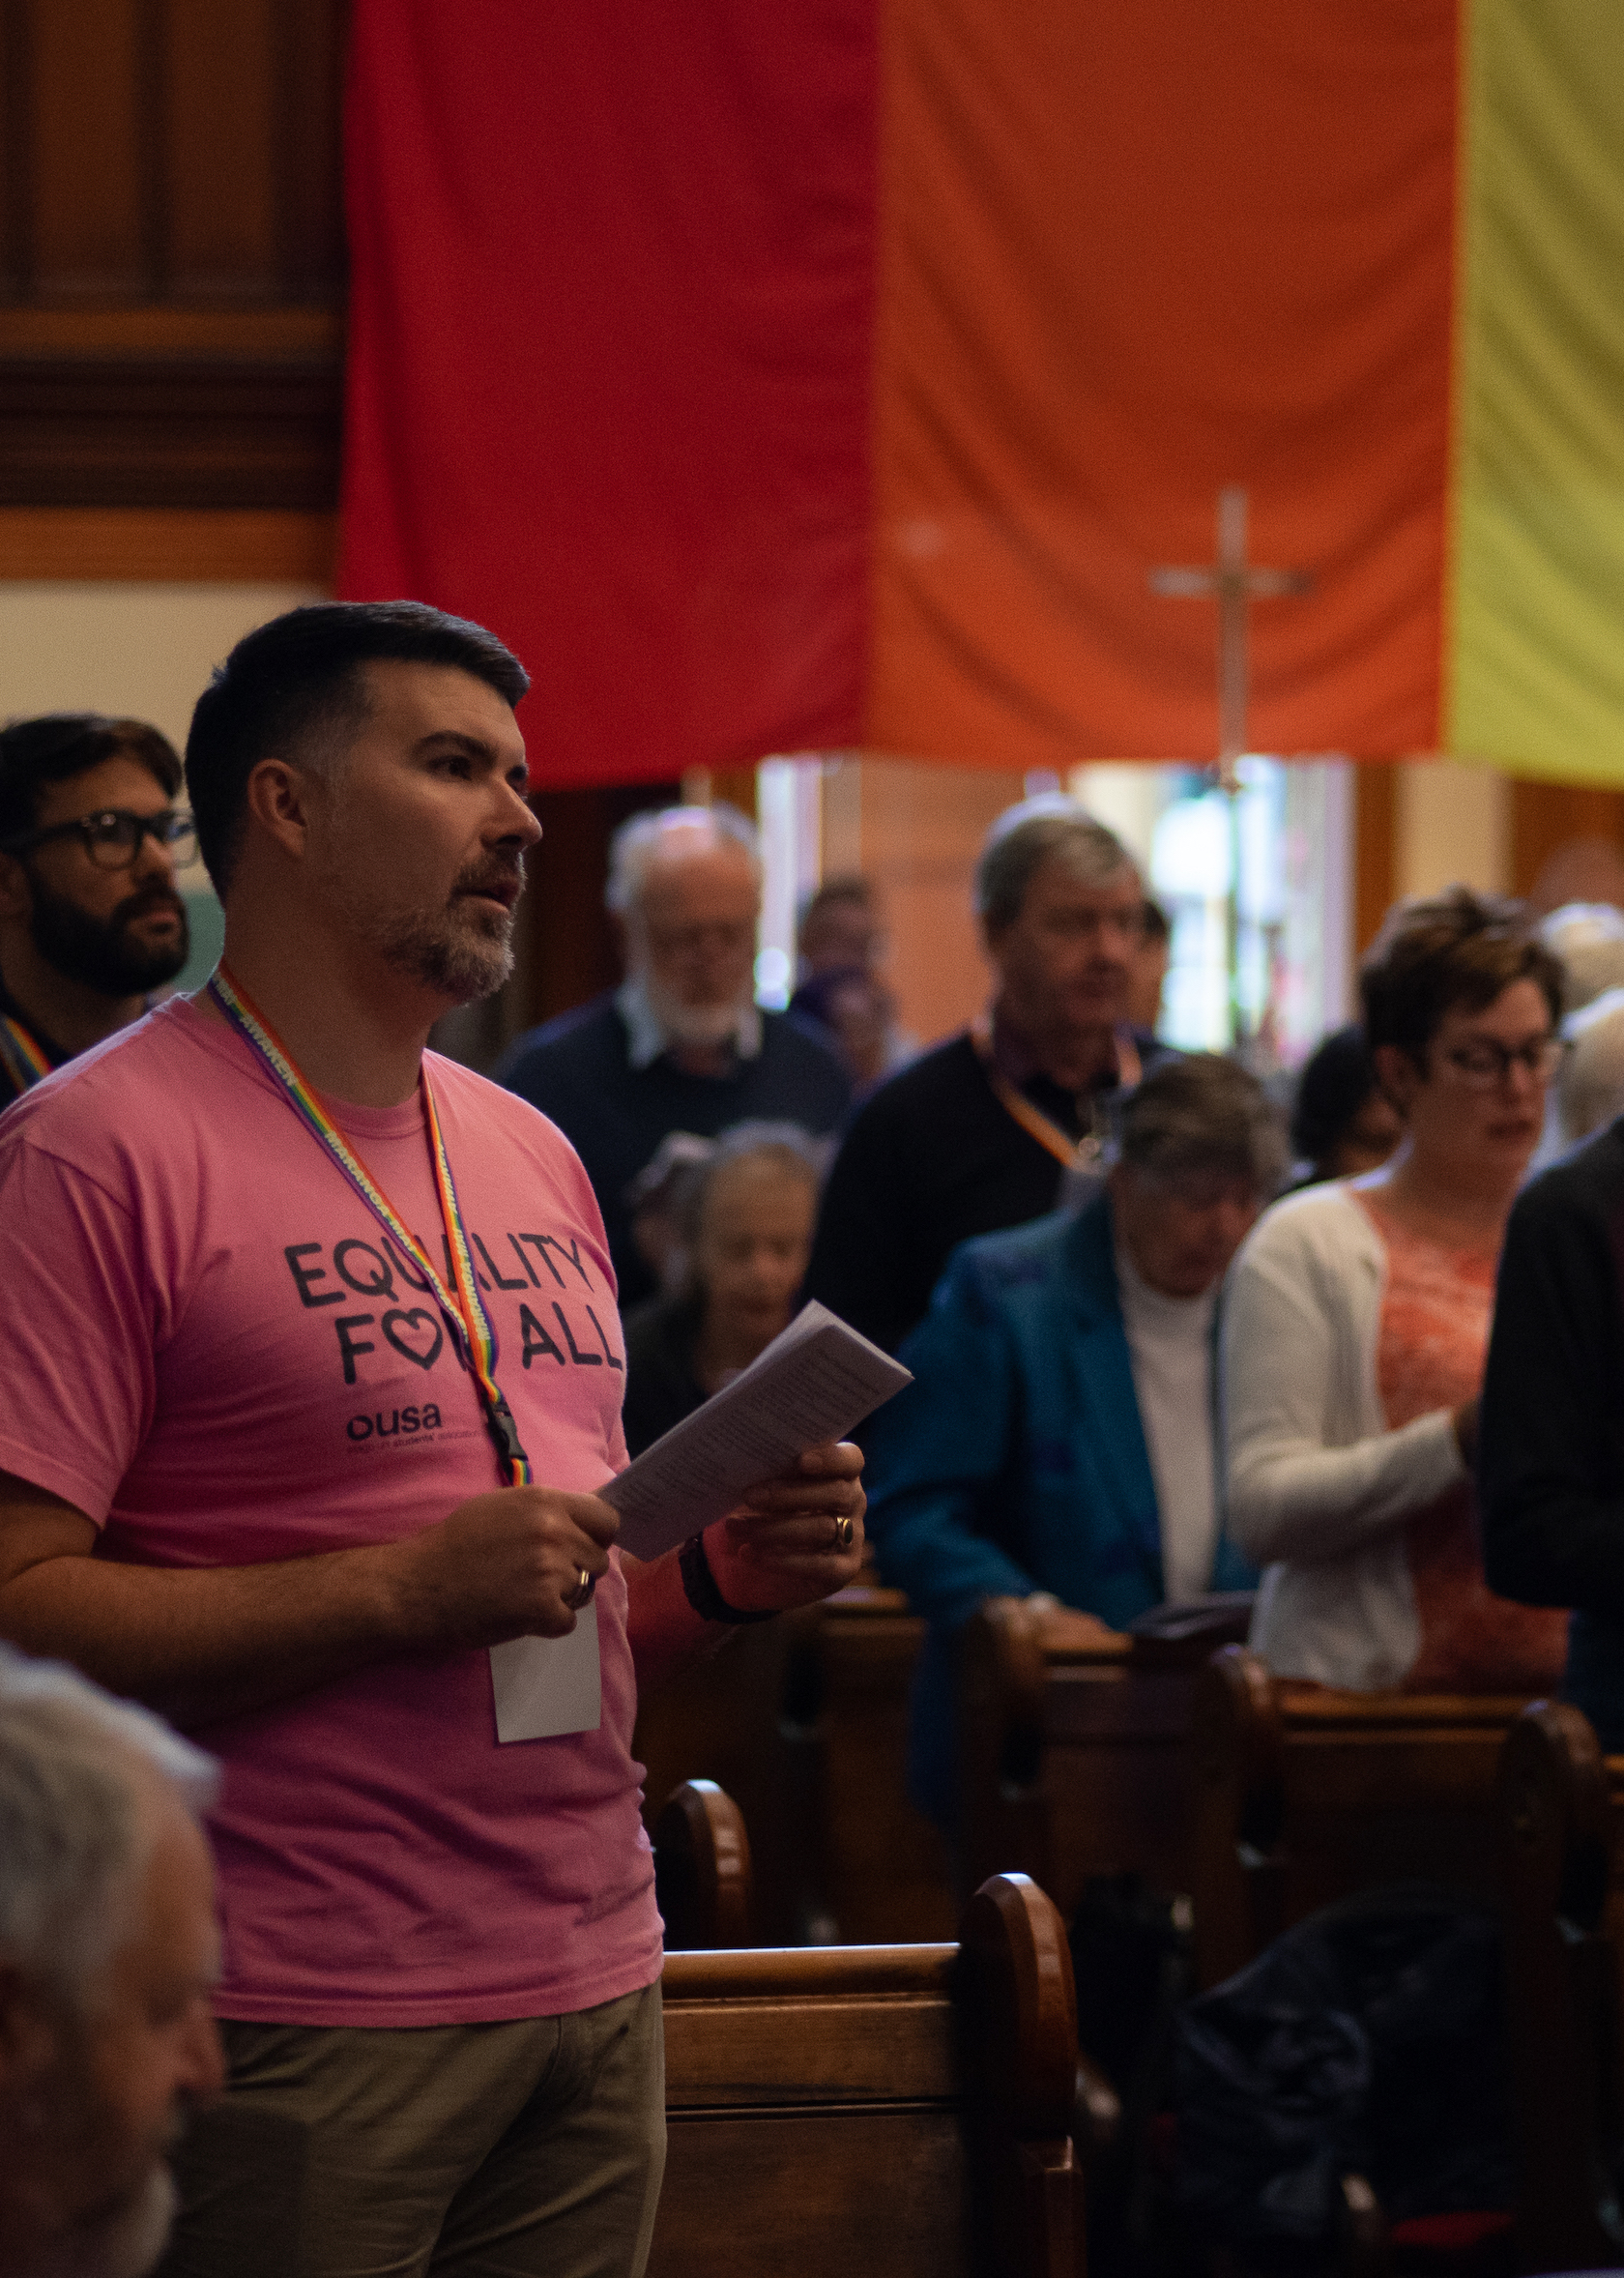 Male with pink shirt that says Equality for All at worship service; large rainbow banner hangs in the background